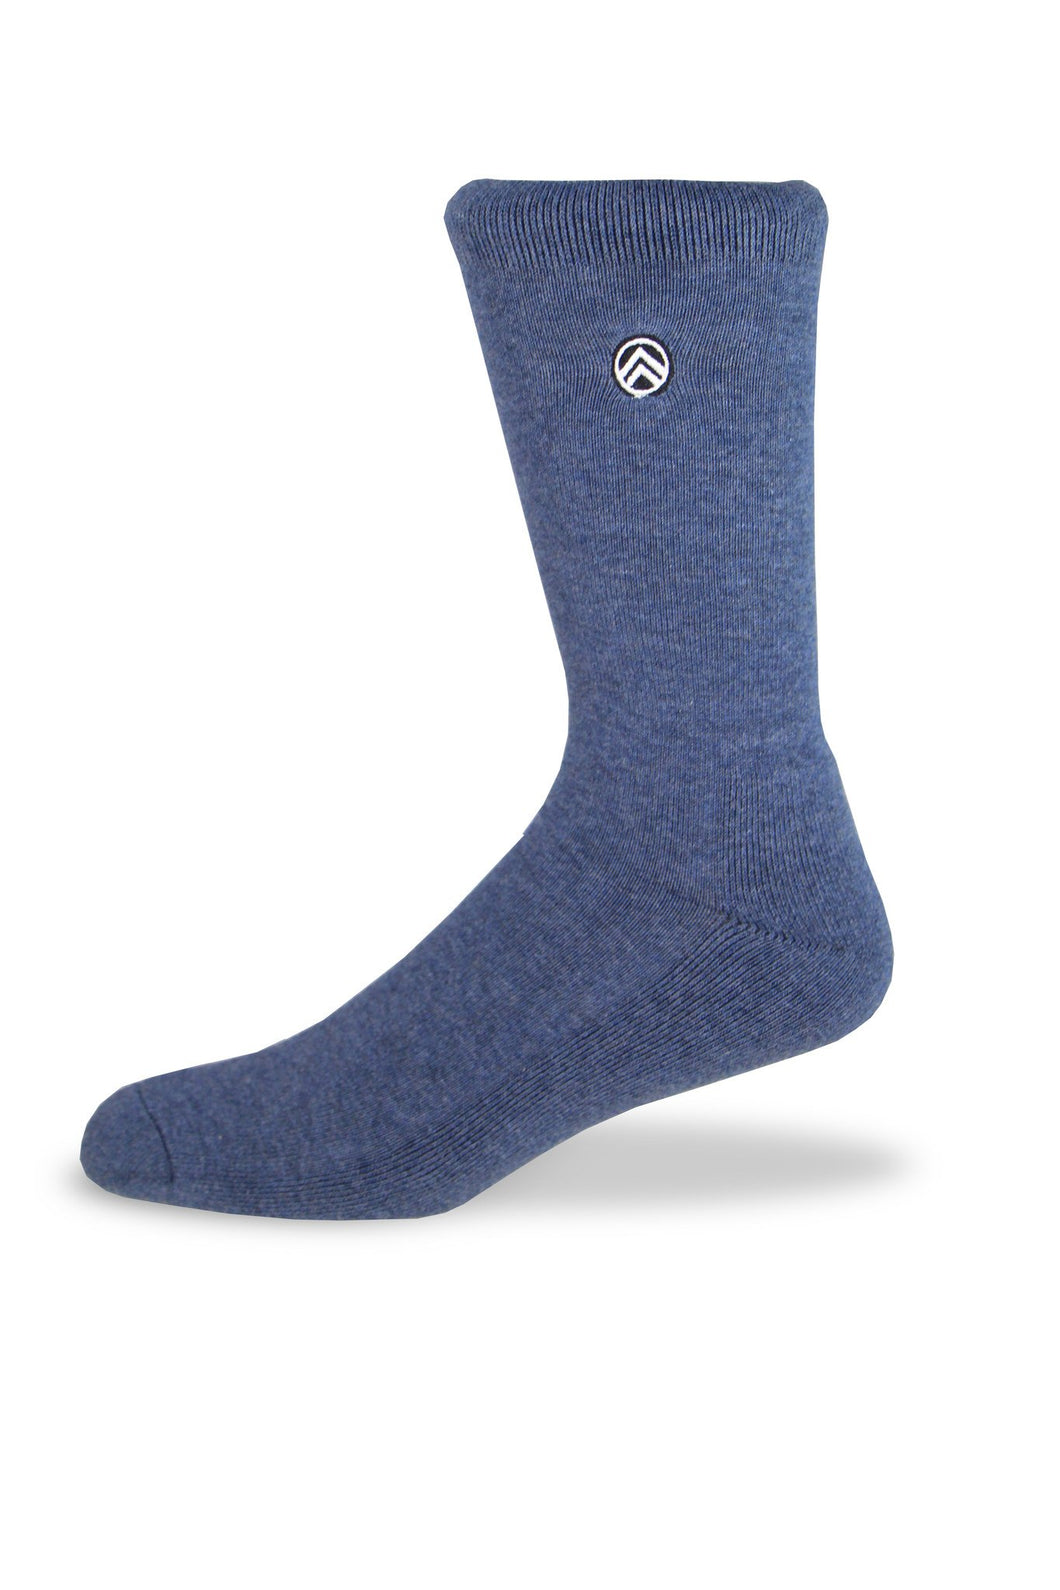 Sky Footwear Socks, Happy Camper Outdoor